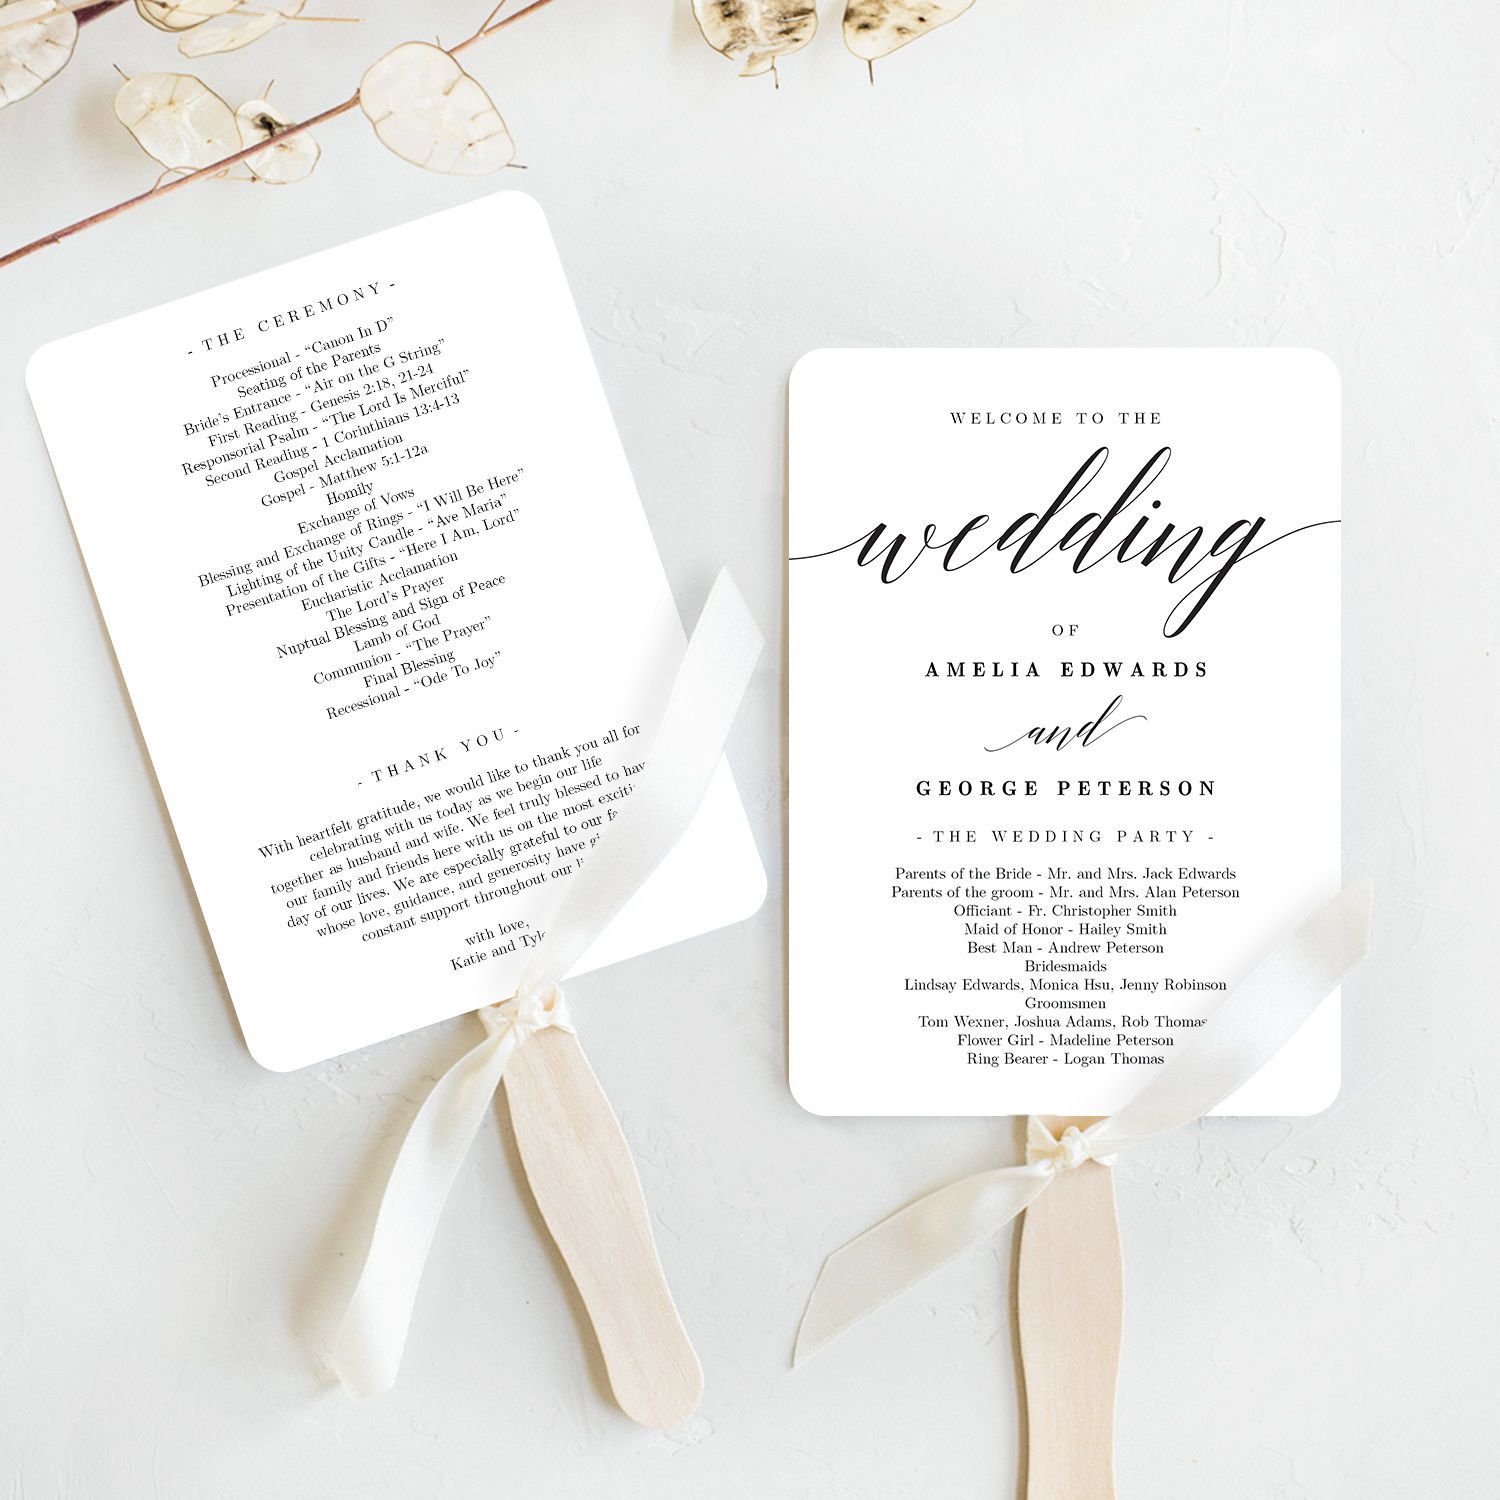 008 Outstanding Wedding Program Fan Template High Resolution  Free Word Paddle Downloadable That Can Be PrintedFull